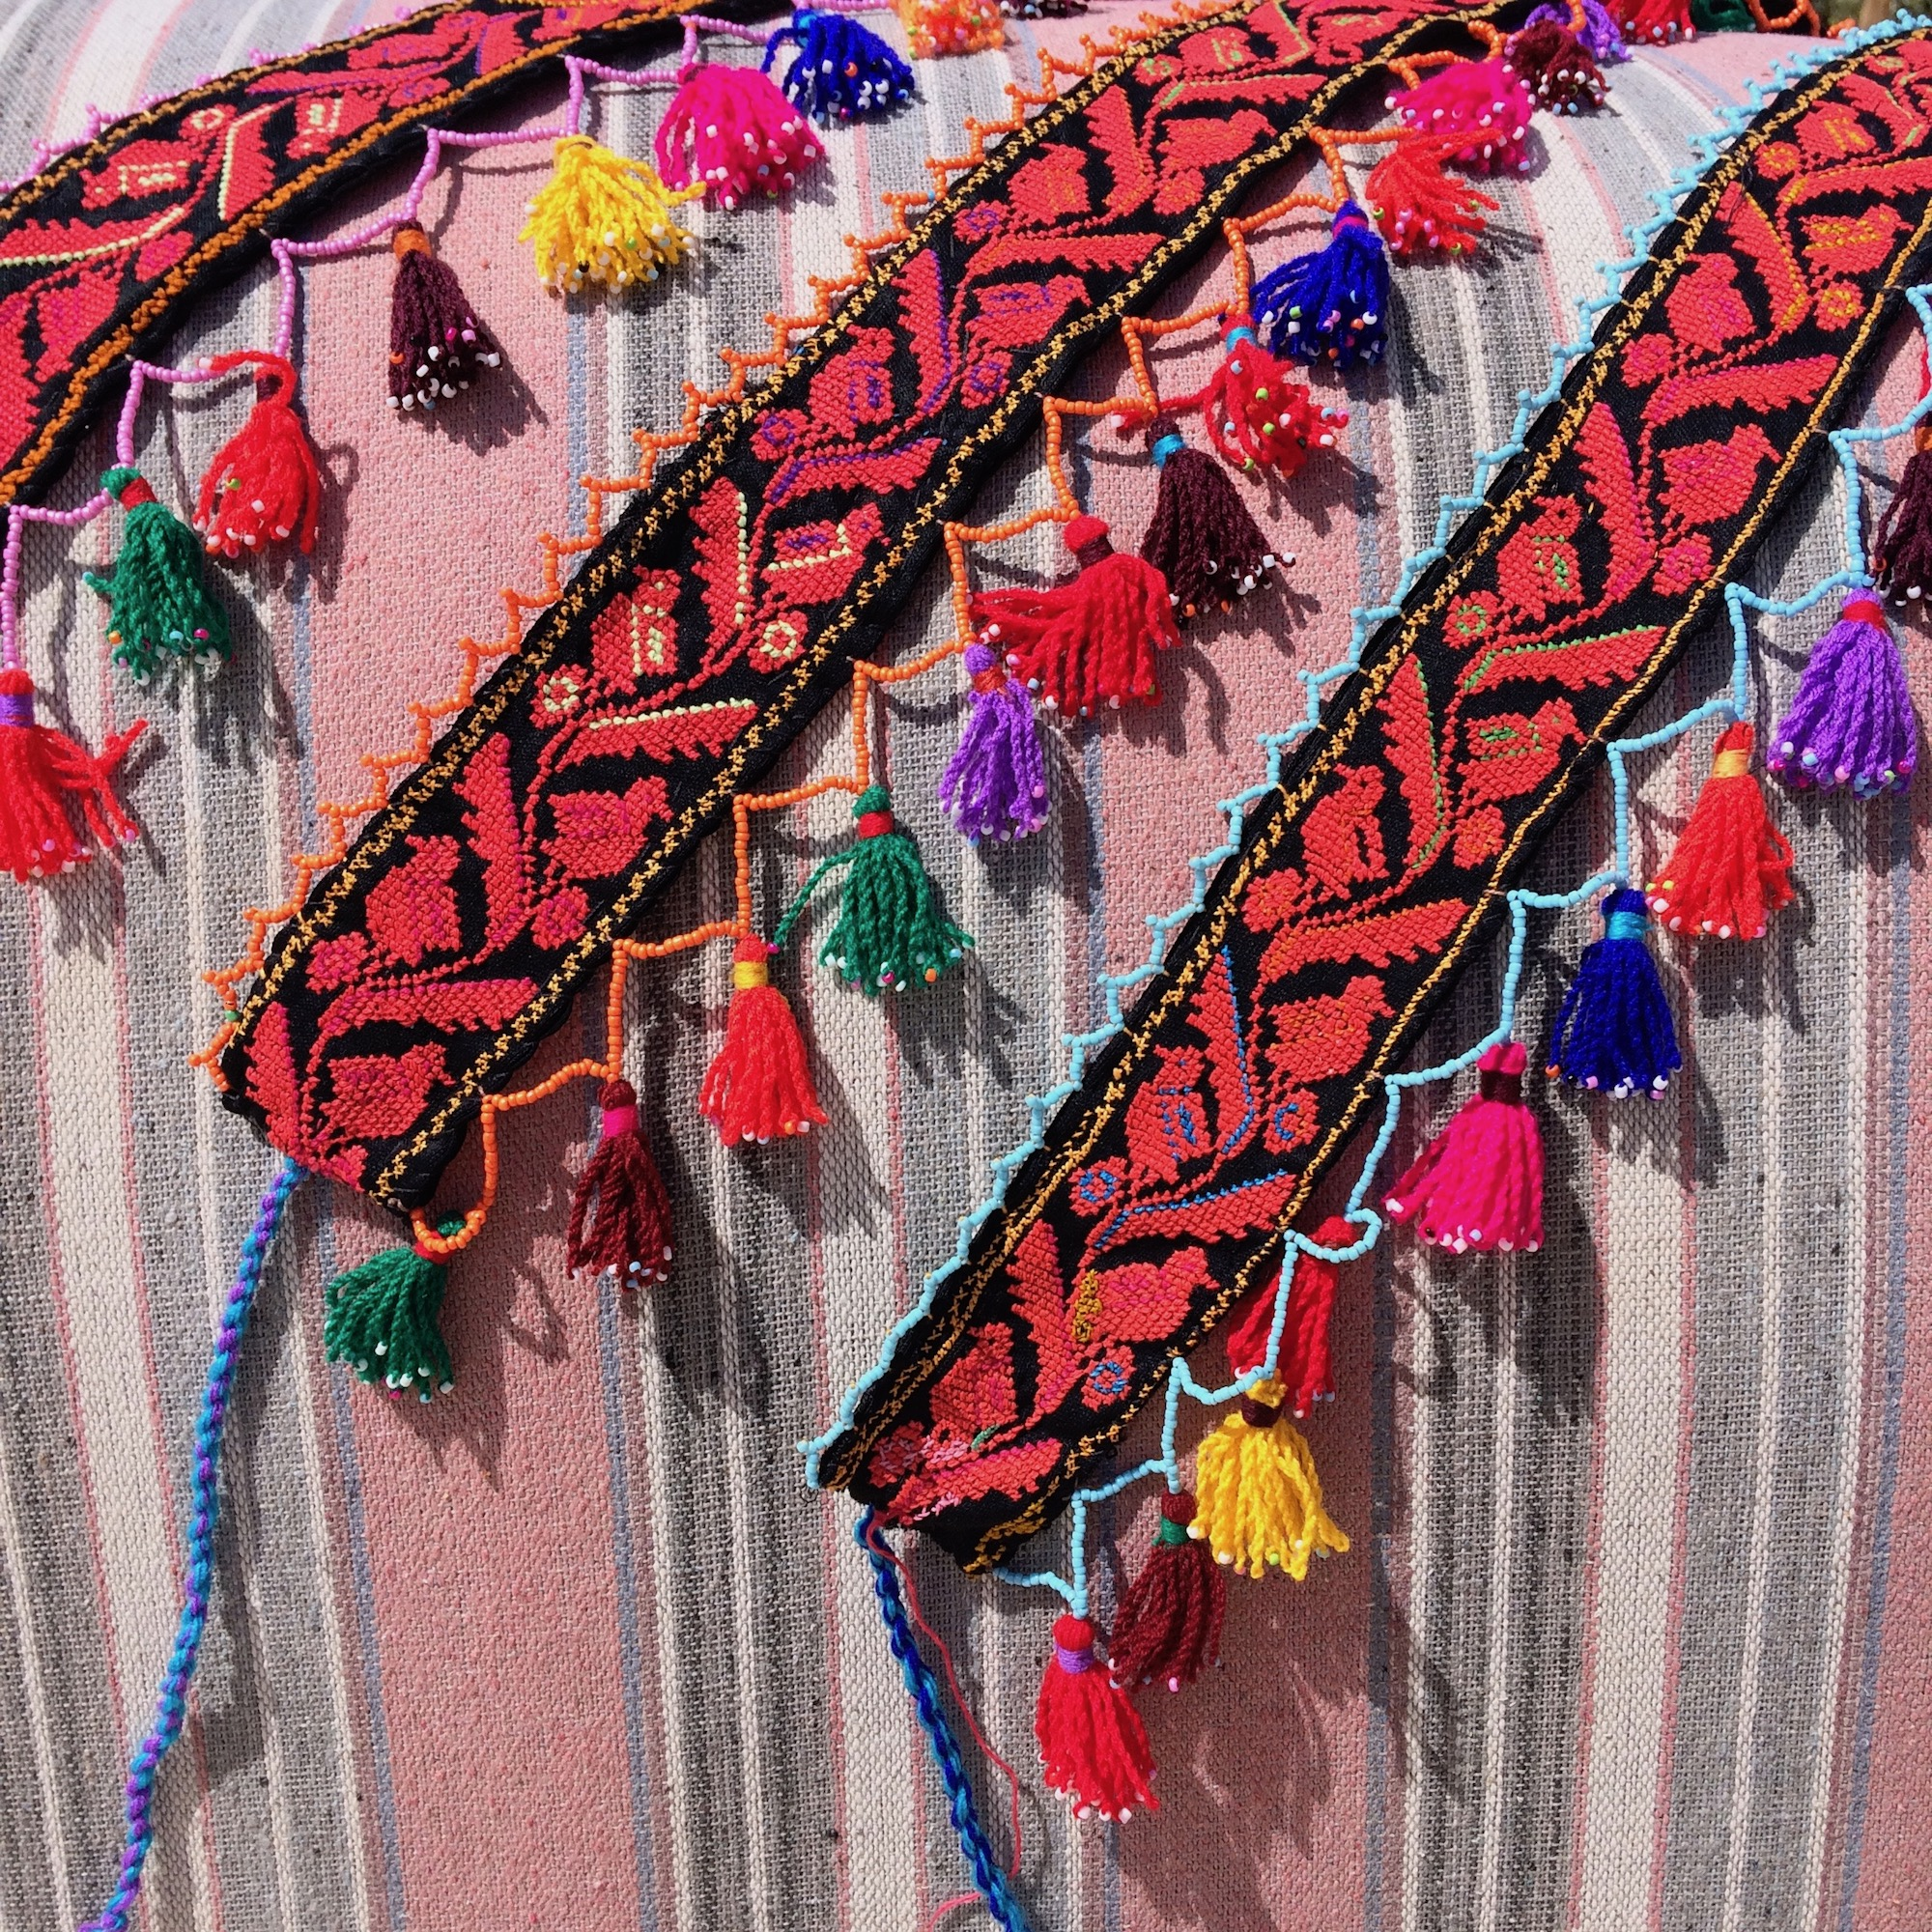 Bedouin Bird & Leaf Embroidered Panel with Tassels